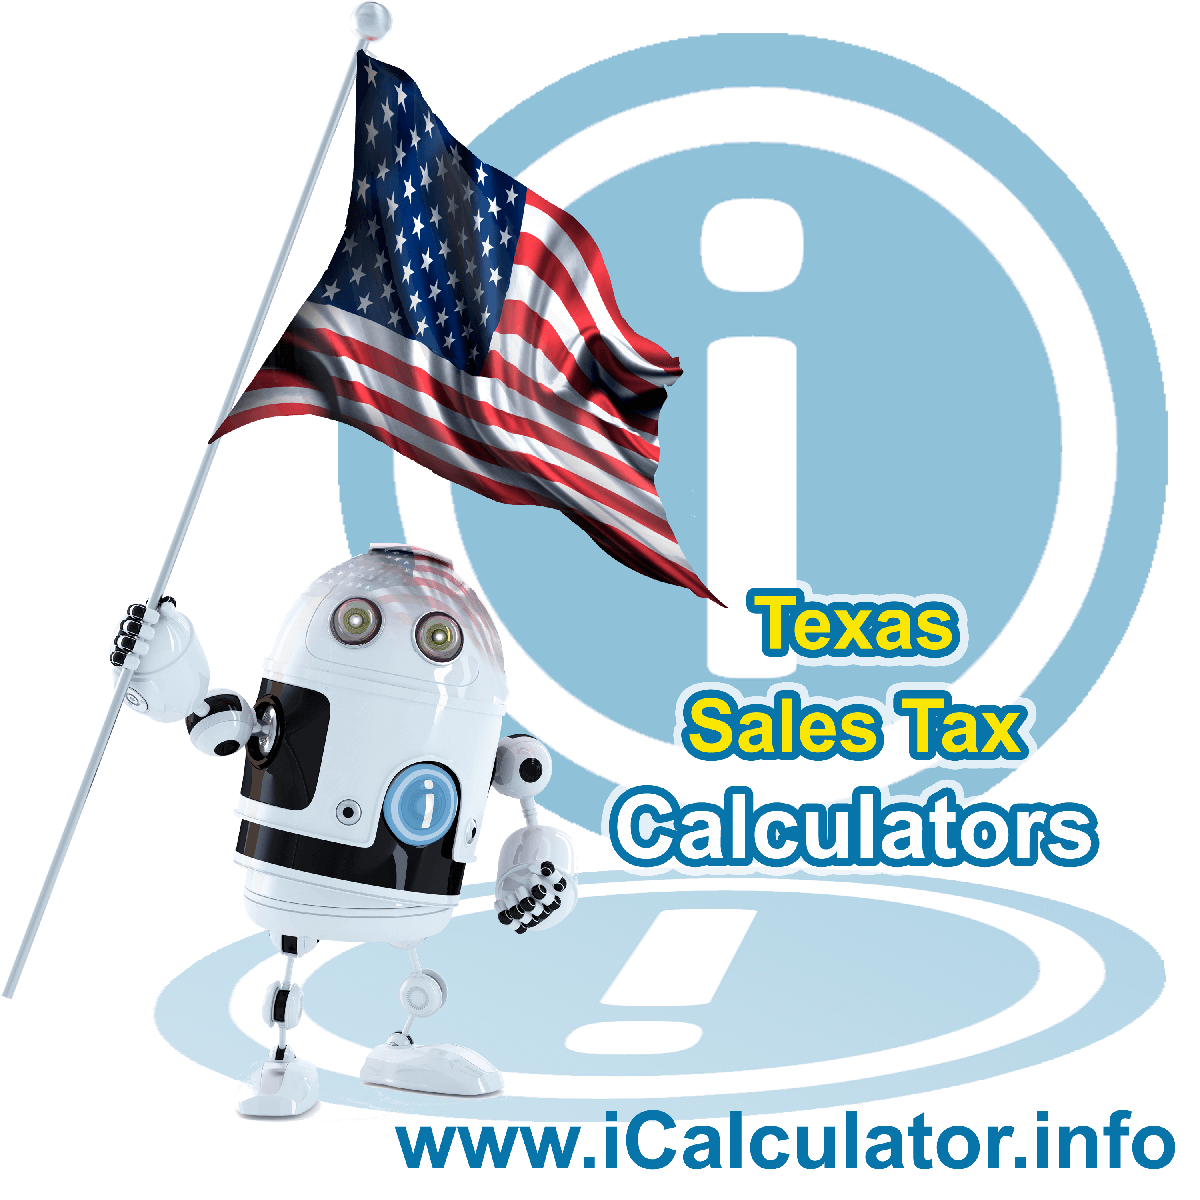 Texas Sales Tax Comparison Calculator: This image illustrates a calculator robot comparing sales tax in Texas manually using the Texas Sales Tax Formula. You can use this information to compare Sales Tax manually or use the Texas Sales Tax Comparison Calculator to calculate and compare Texas sales tax online.